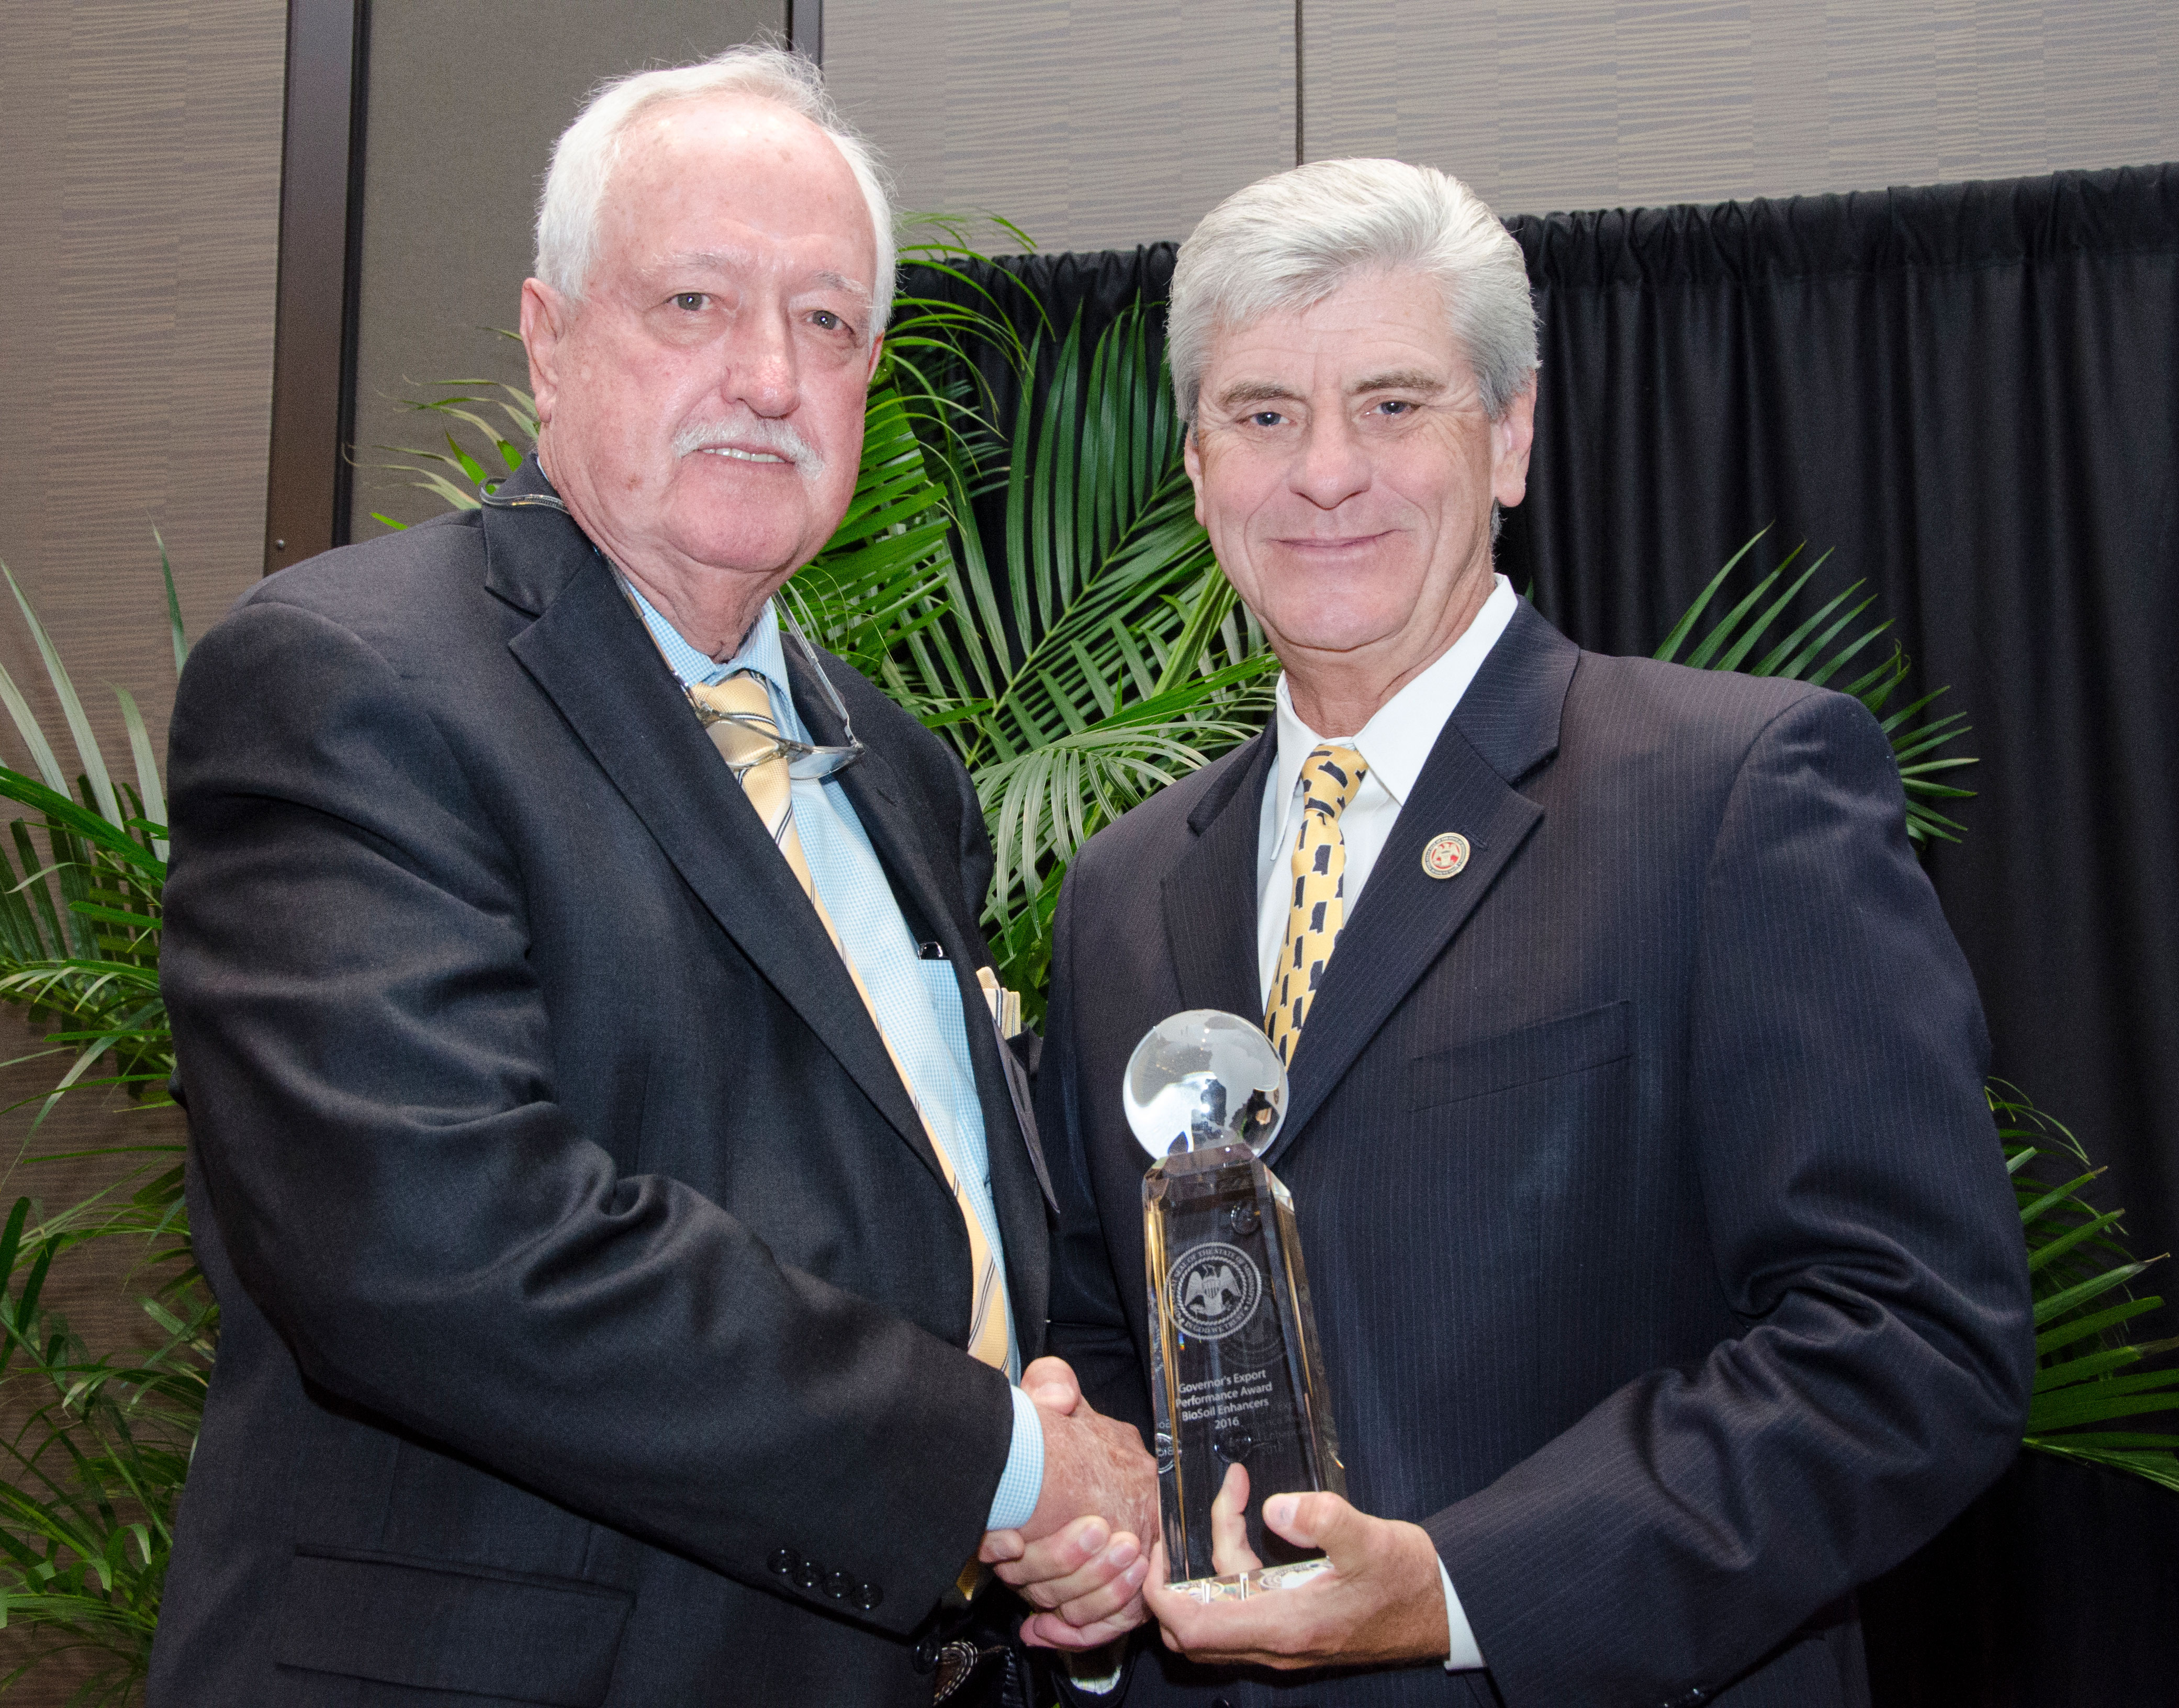 BSEI President, Wayne Wade, accepts award from MS Governor, Phil Bryant